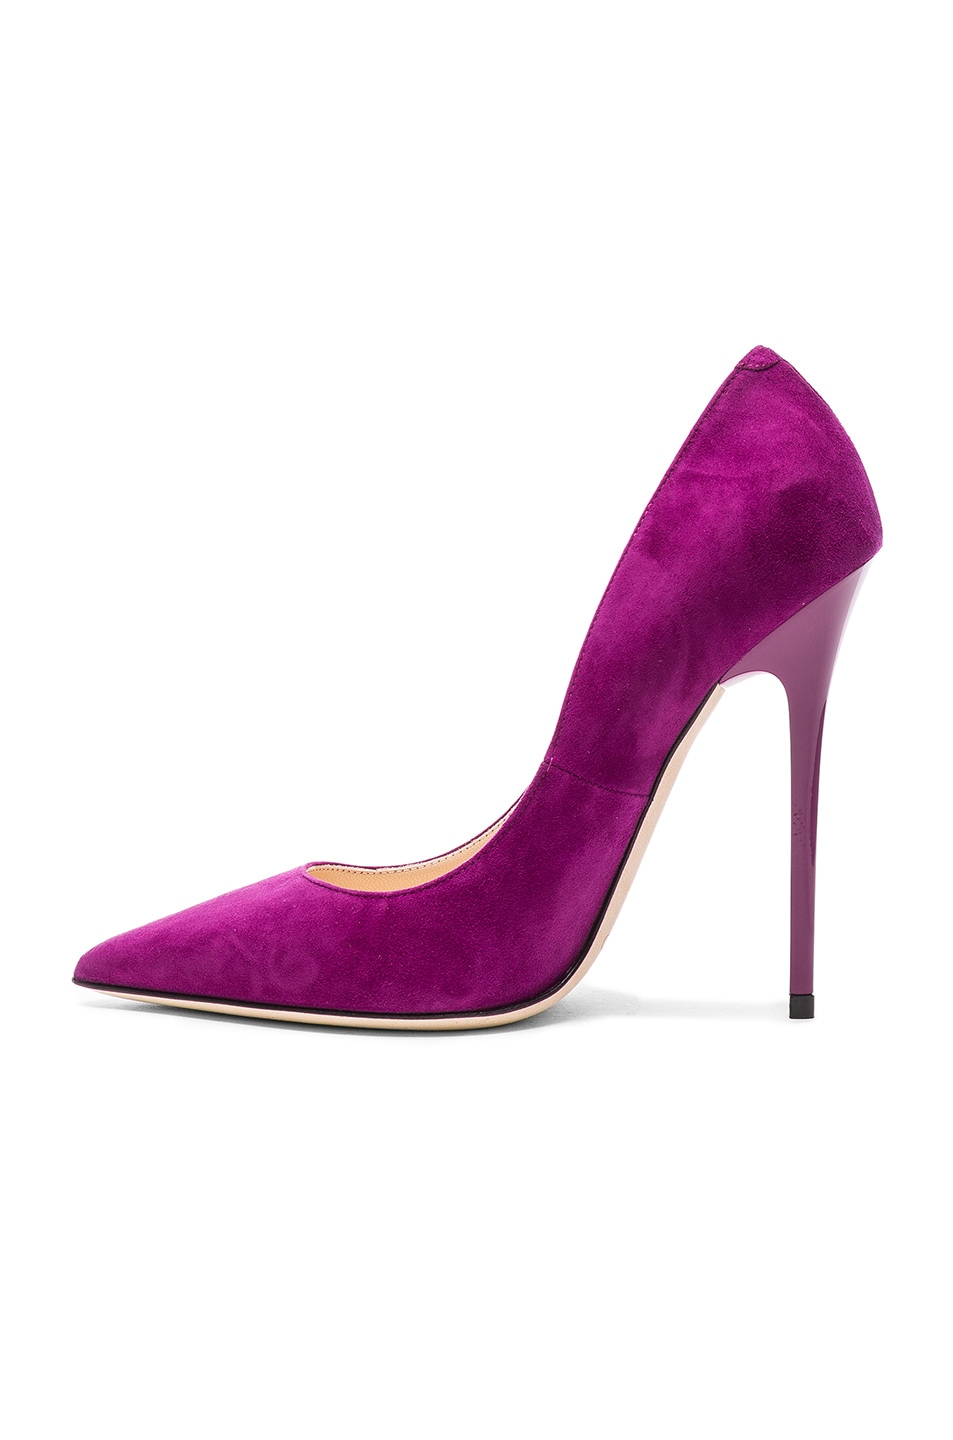 Image 5 of Jimmy Choo Suede Anouk Heels in Madeline